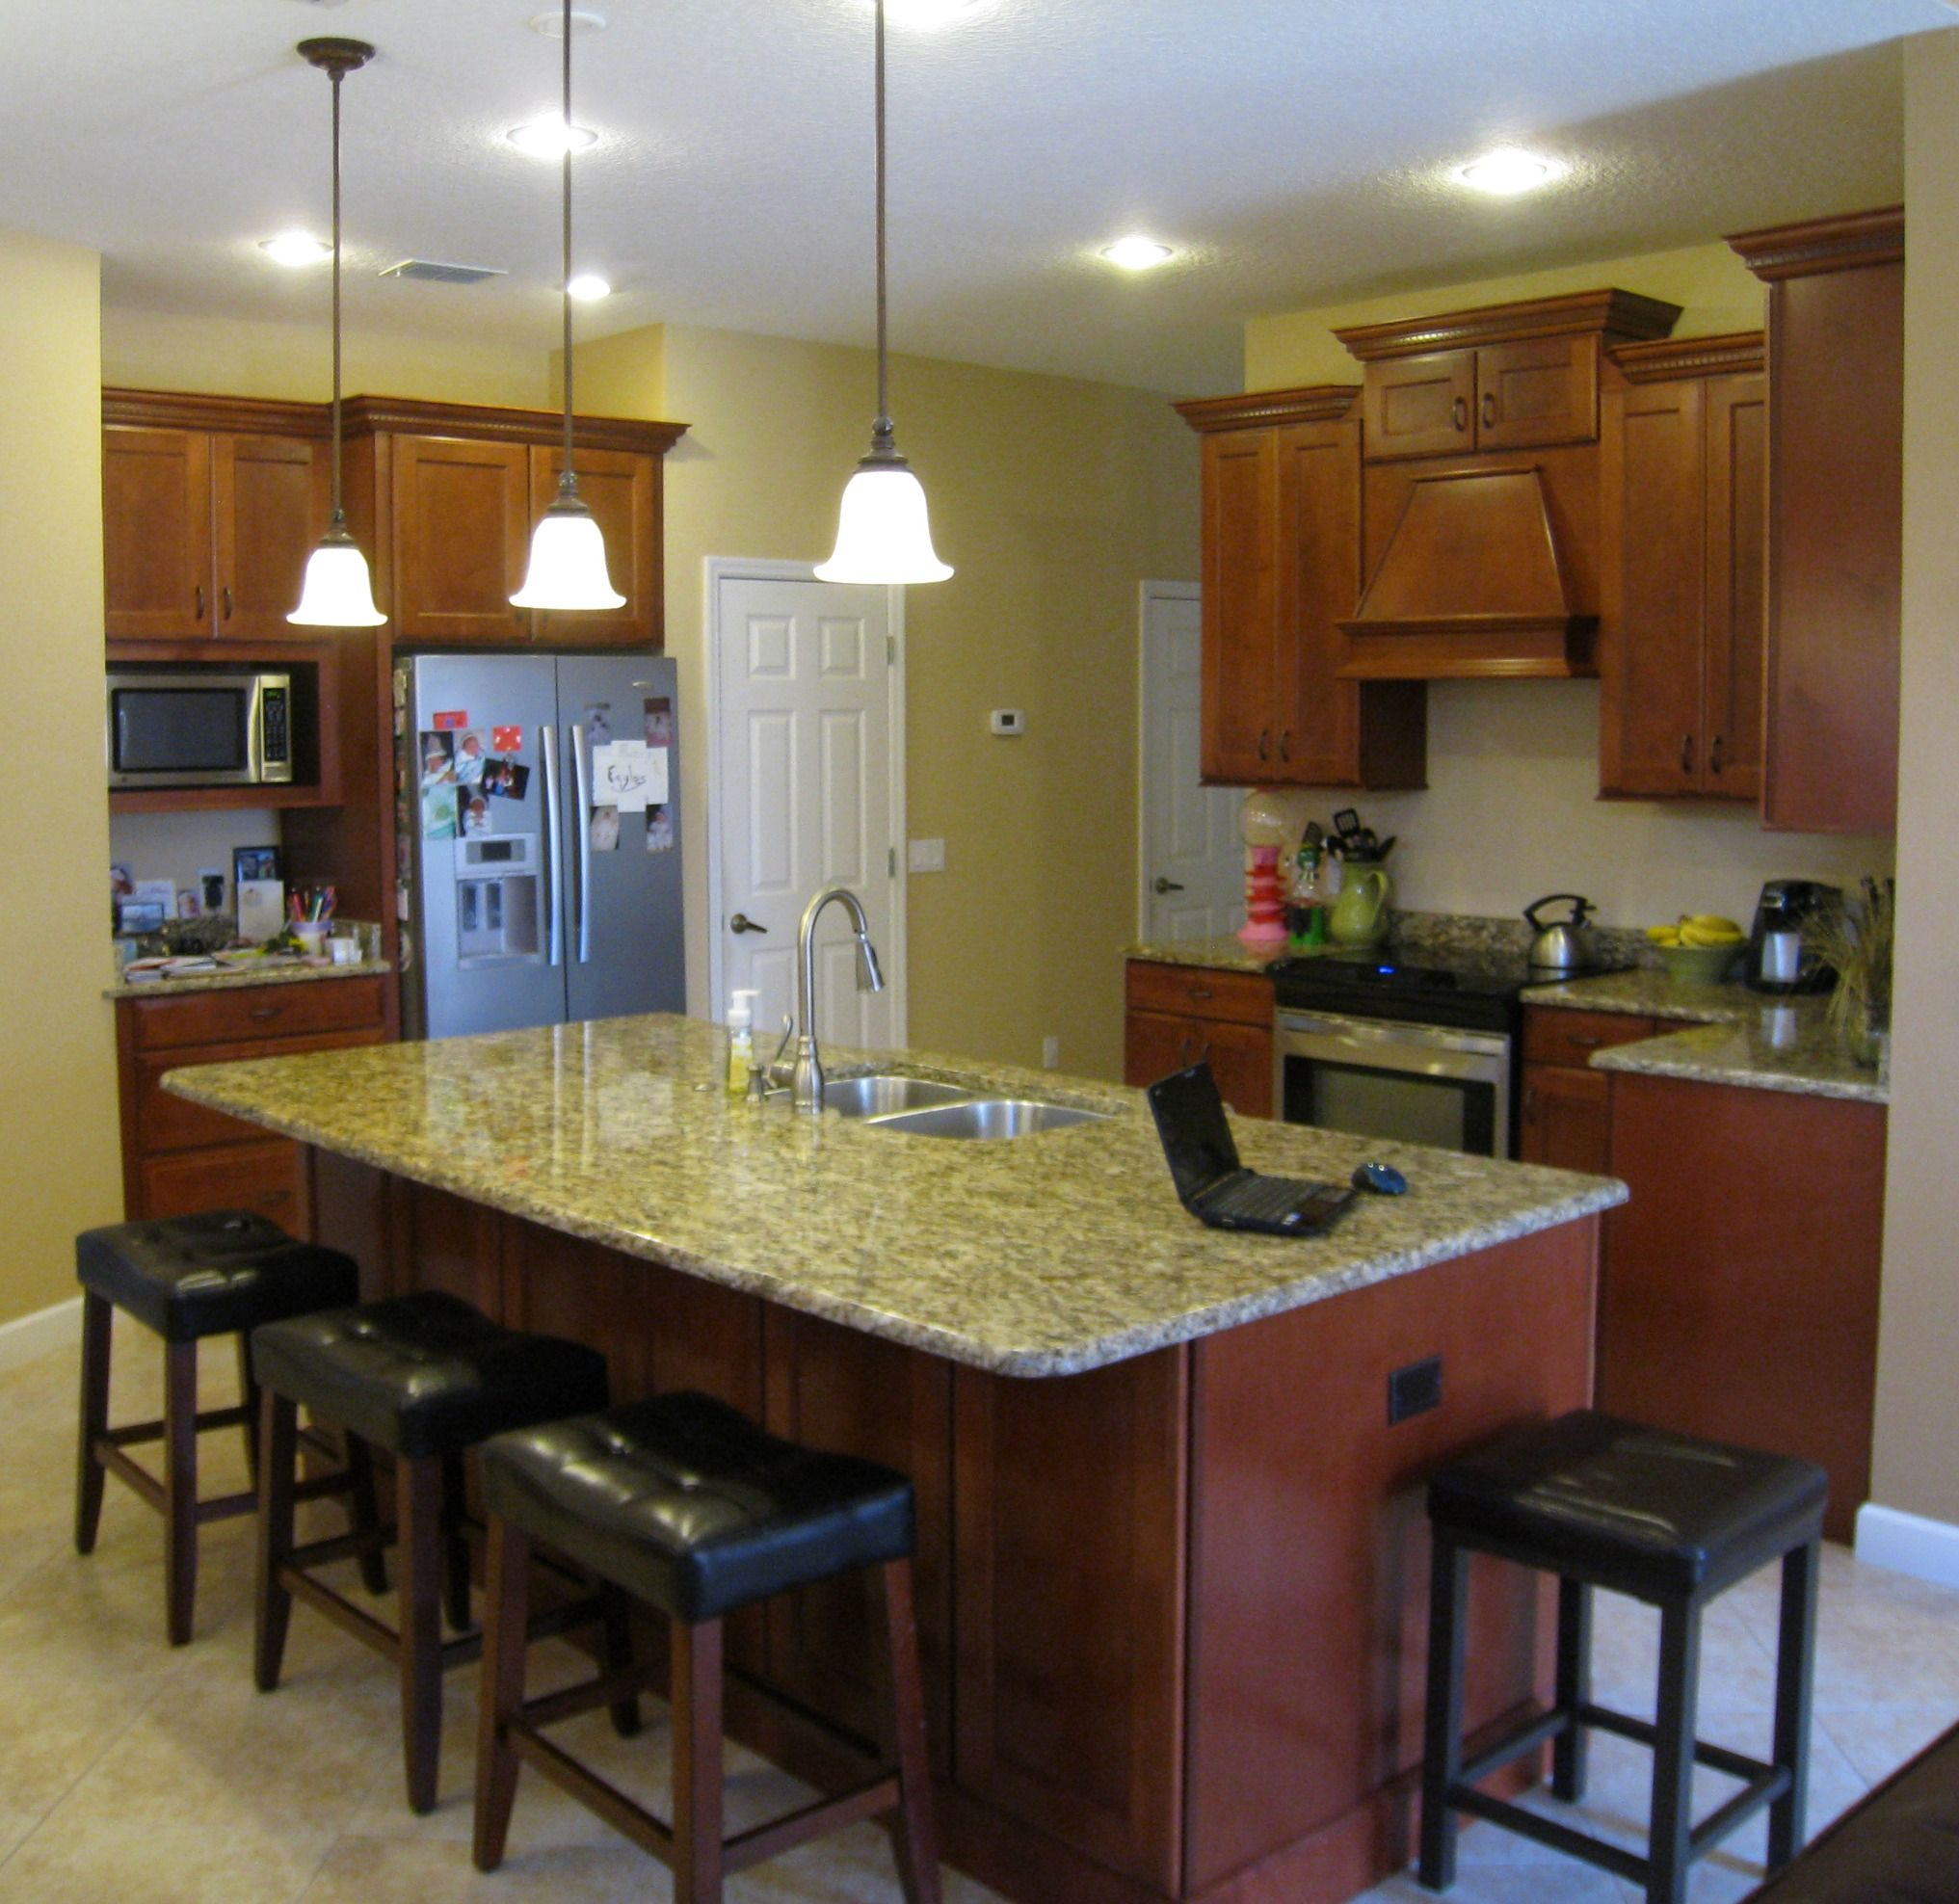 Kitchen And Bathroom Remodeling Contractors: Cabinets, Lighting, Counters, Hardware, Appliances, And